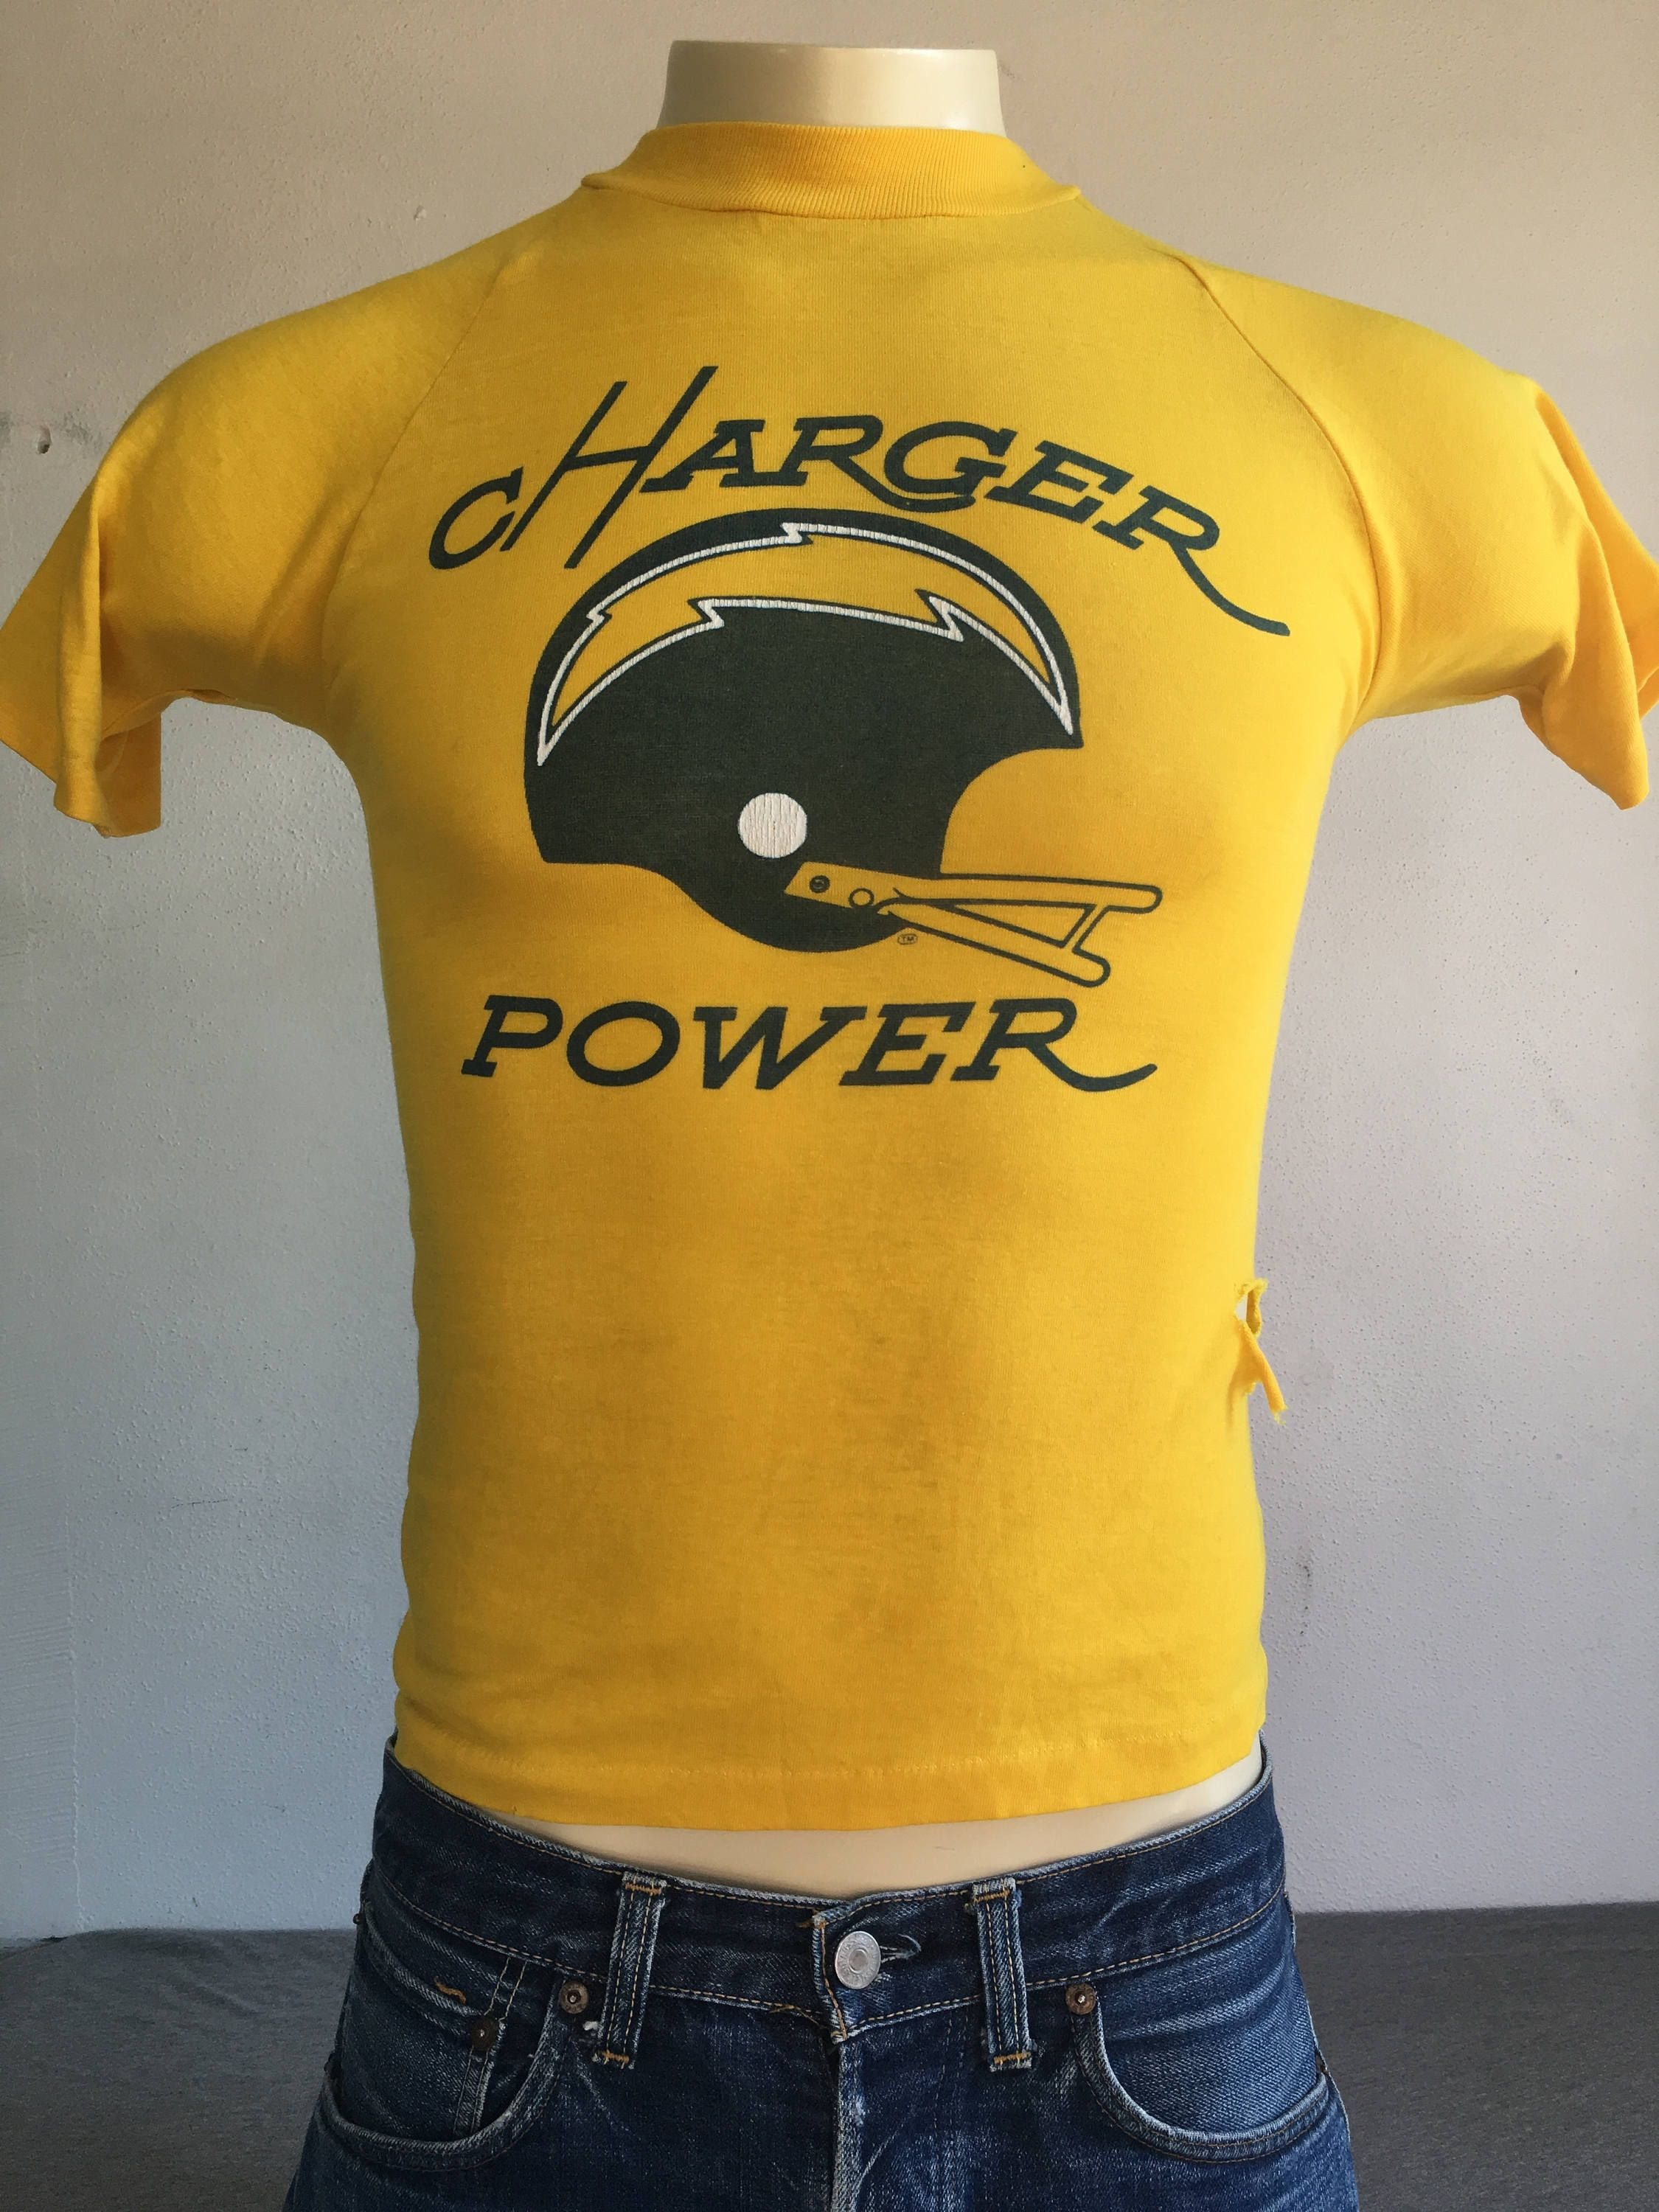 b02a31479 CHARGERS Shirt 70 s 80 s Vintage  San Diego LA Los Angeles Charger Power  Football Tshirt  Classic Helmet Raglan NfL Yellow Gold XS Small by  sweetVTGtshirt ...